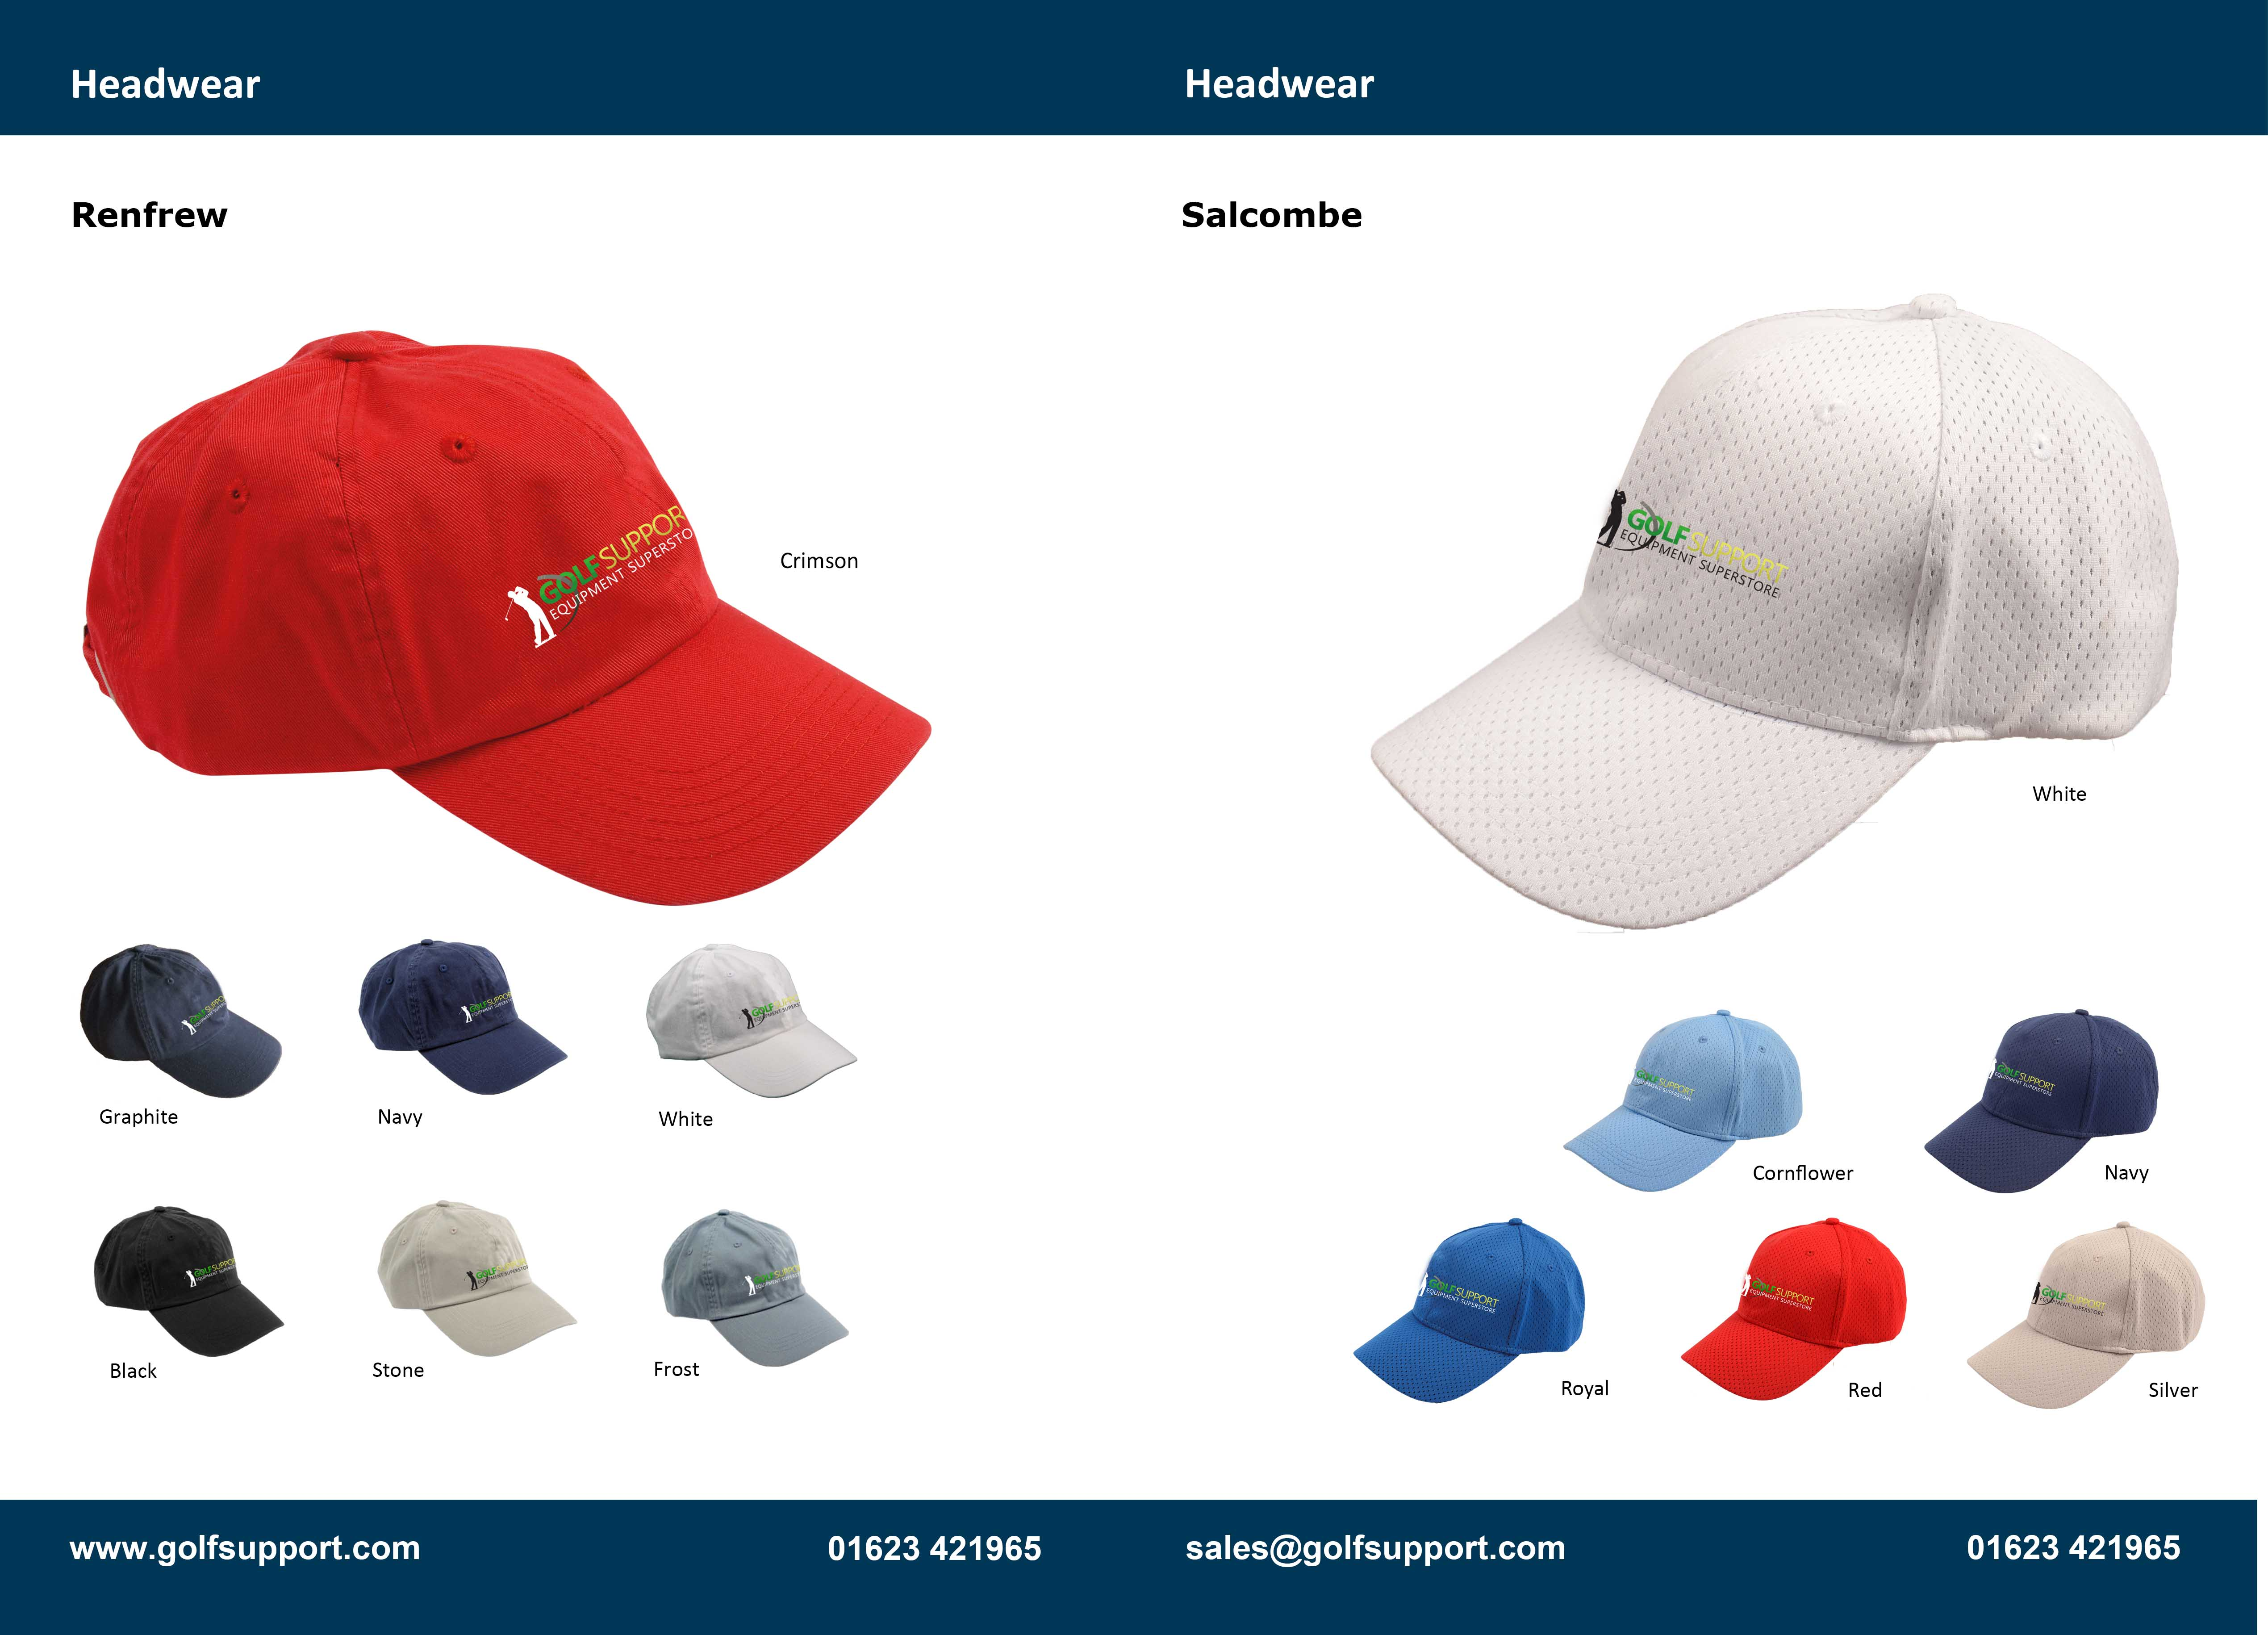 Corporate Golf Gifts and Merchandise 462eeb13b17